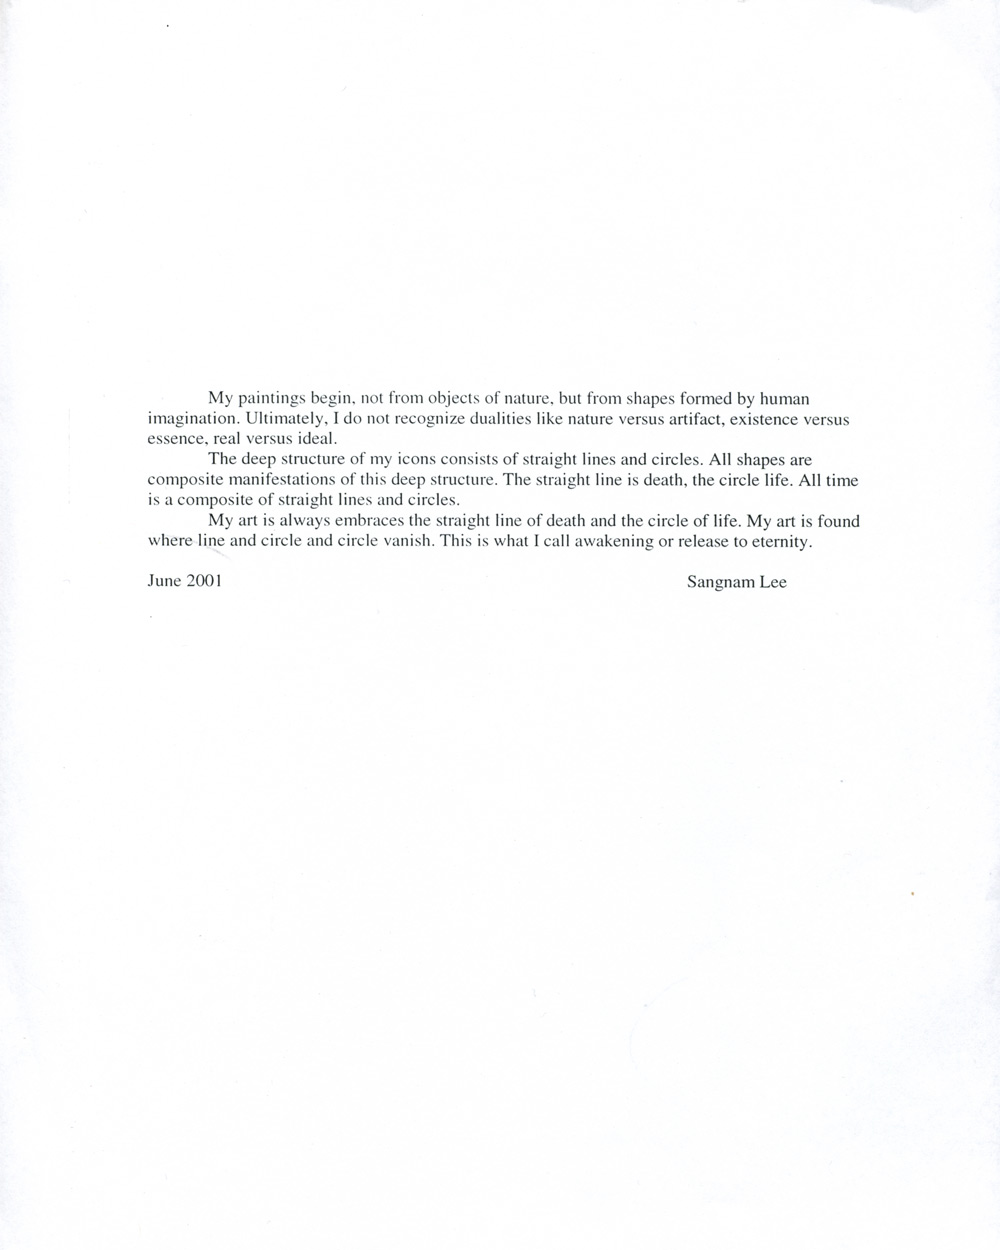 Sang Nam Lee's Artist Statement, June 2001